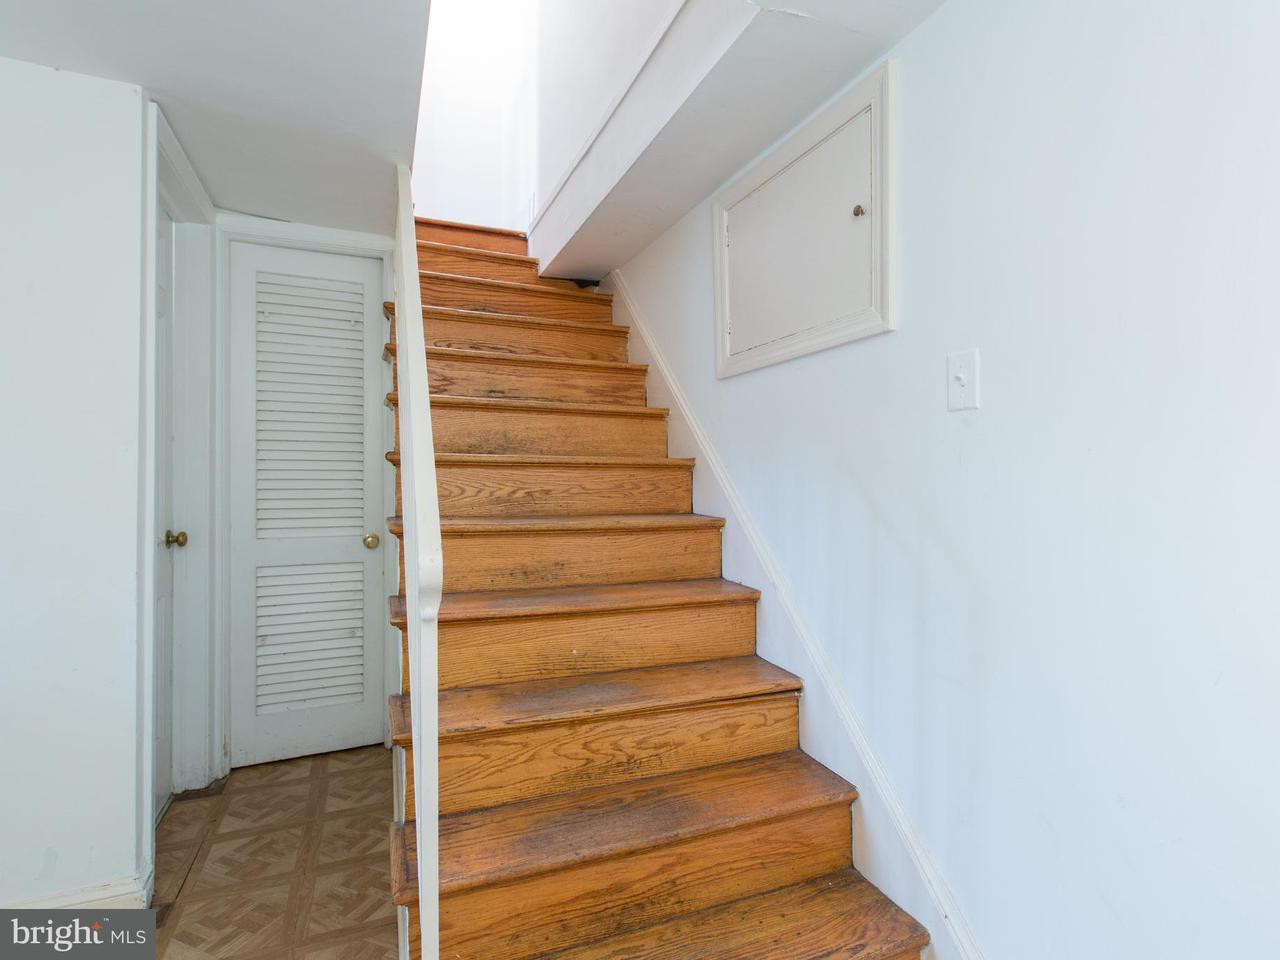 Additional photo for property listing at 3317 Q St NW  Washington, District Of Columbia 20007 United States